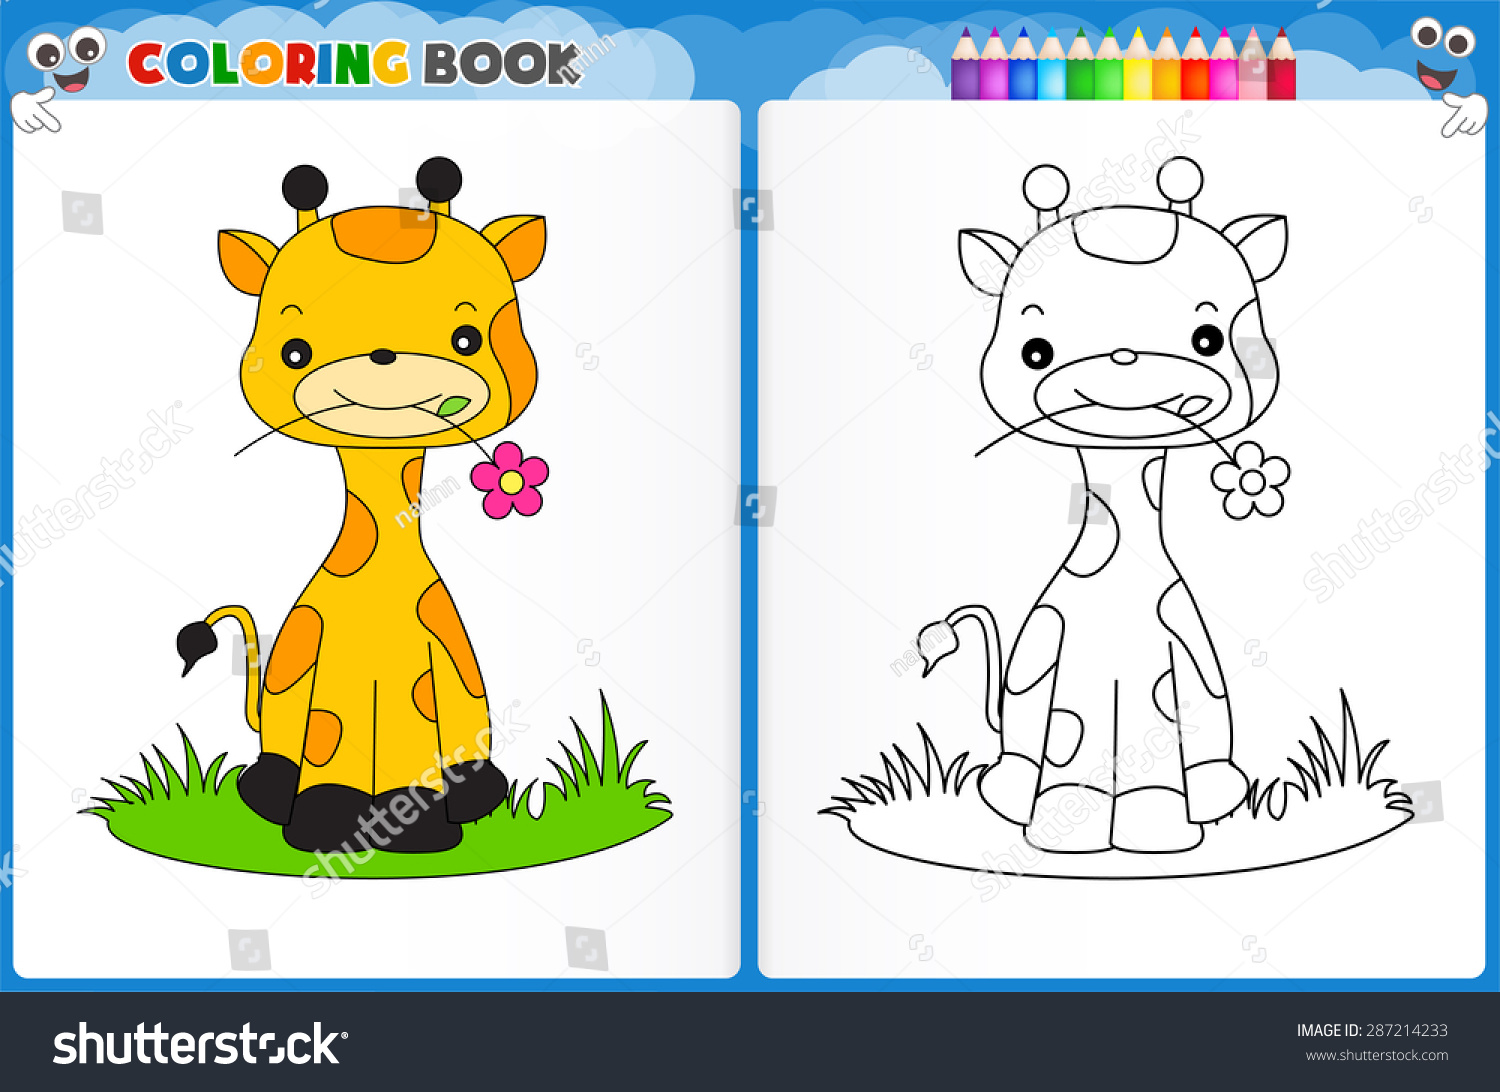 Coloring Page Cute Giraffe Colorful Sample Stock Vector